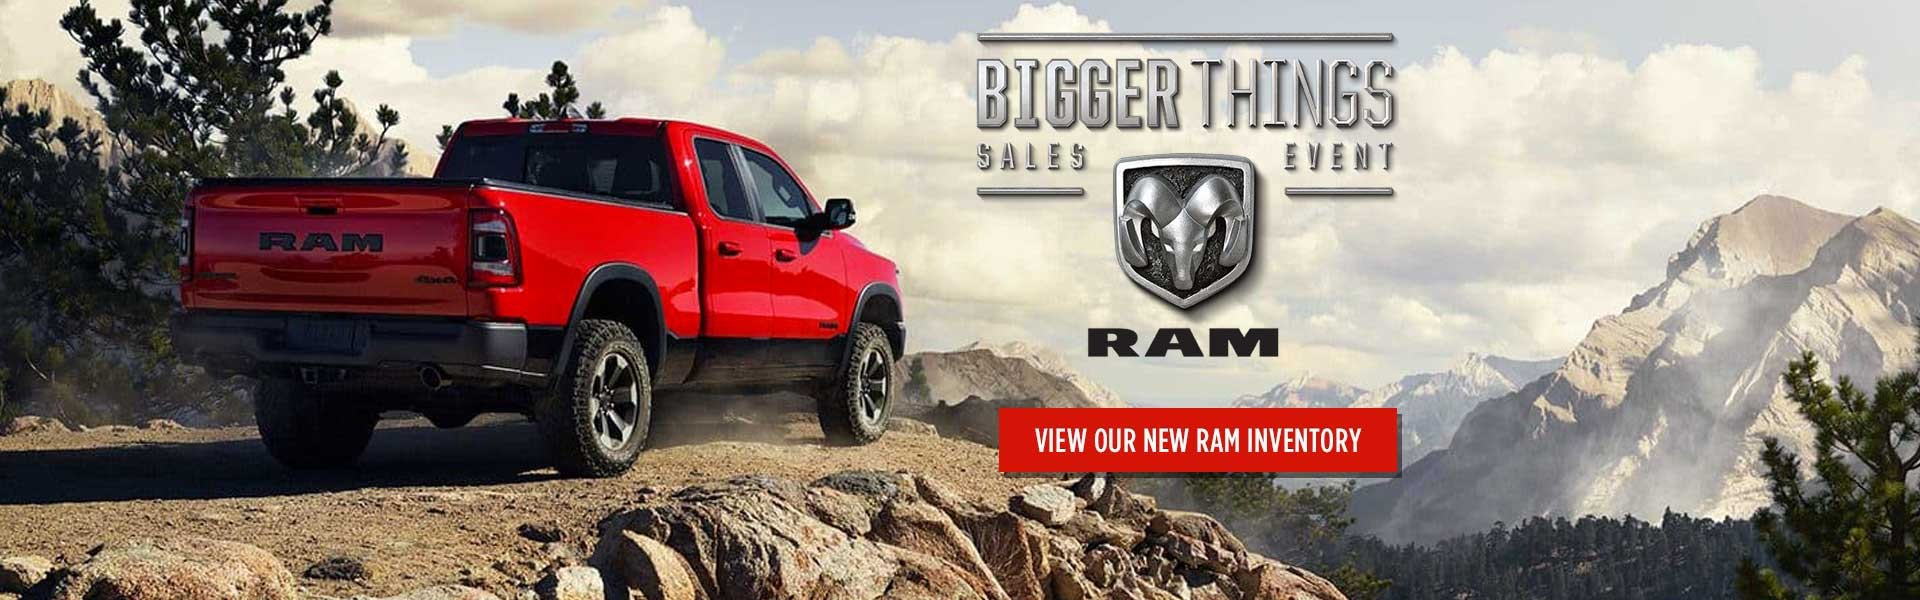 Ram Bigger Things Sales Event